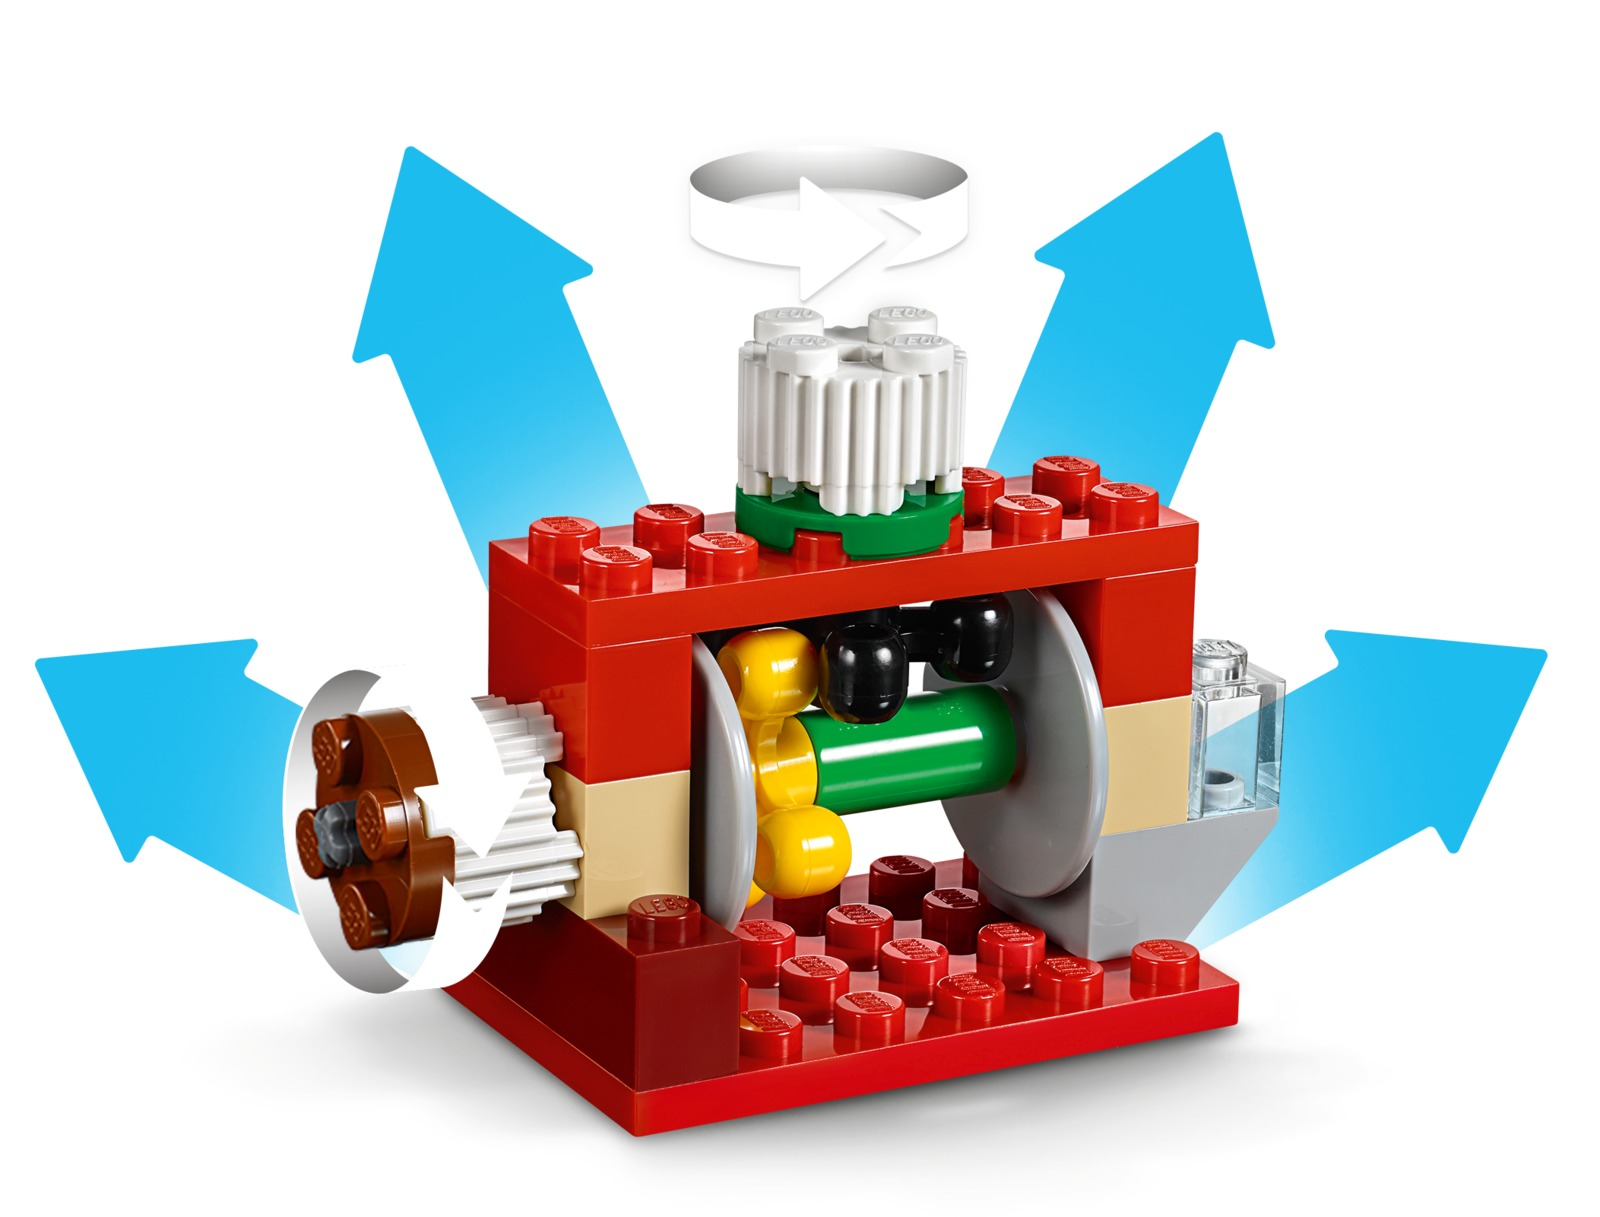 LEGO Classic: Bricks and Gears (10712) image